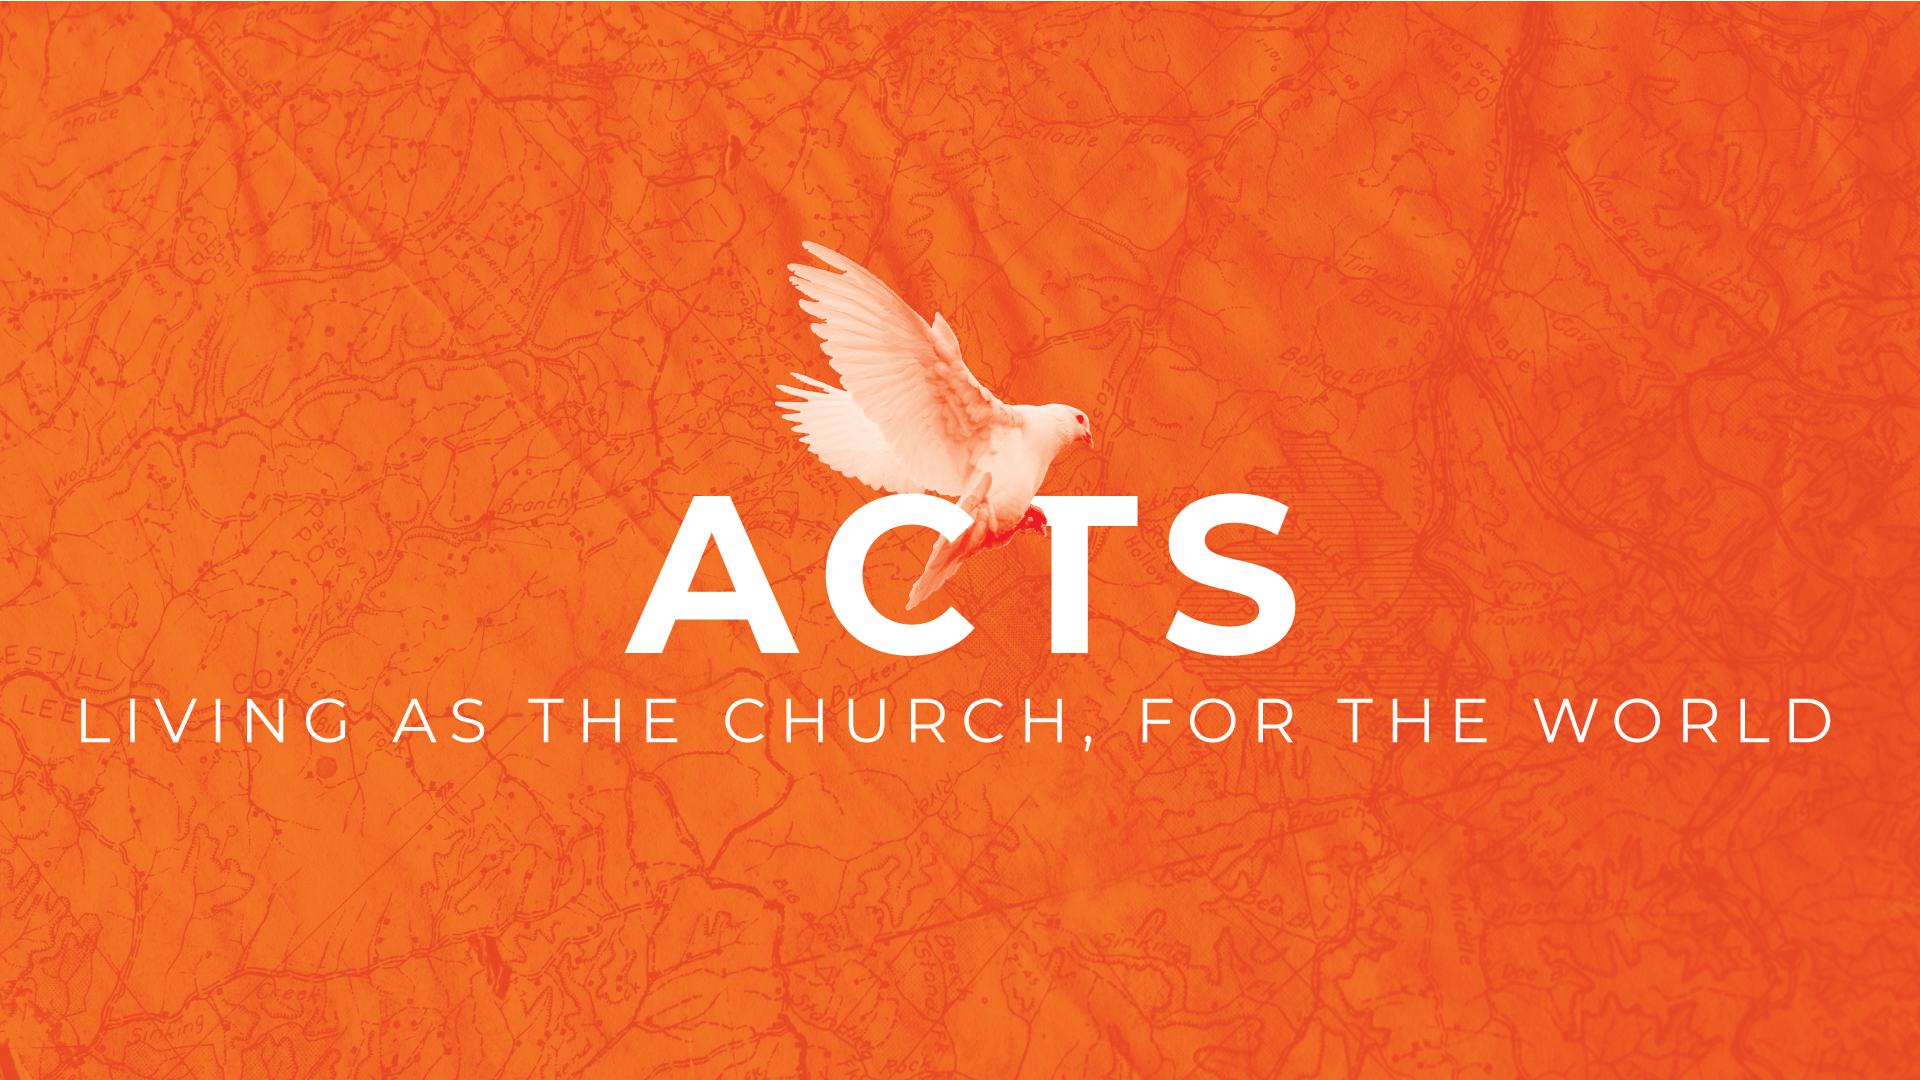 Acts 3-13 - Living as the Church, for the World